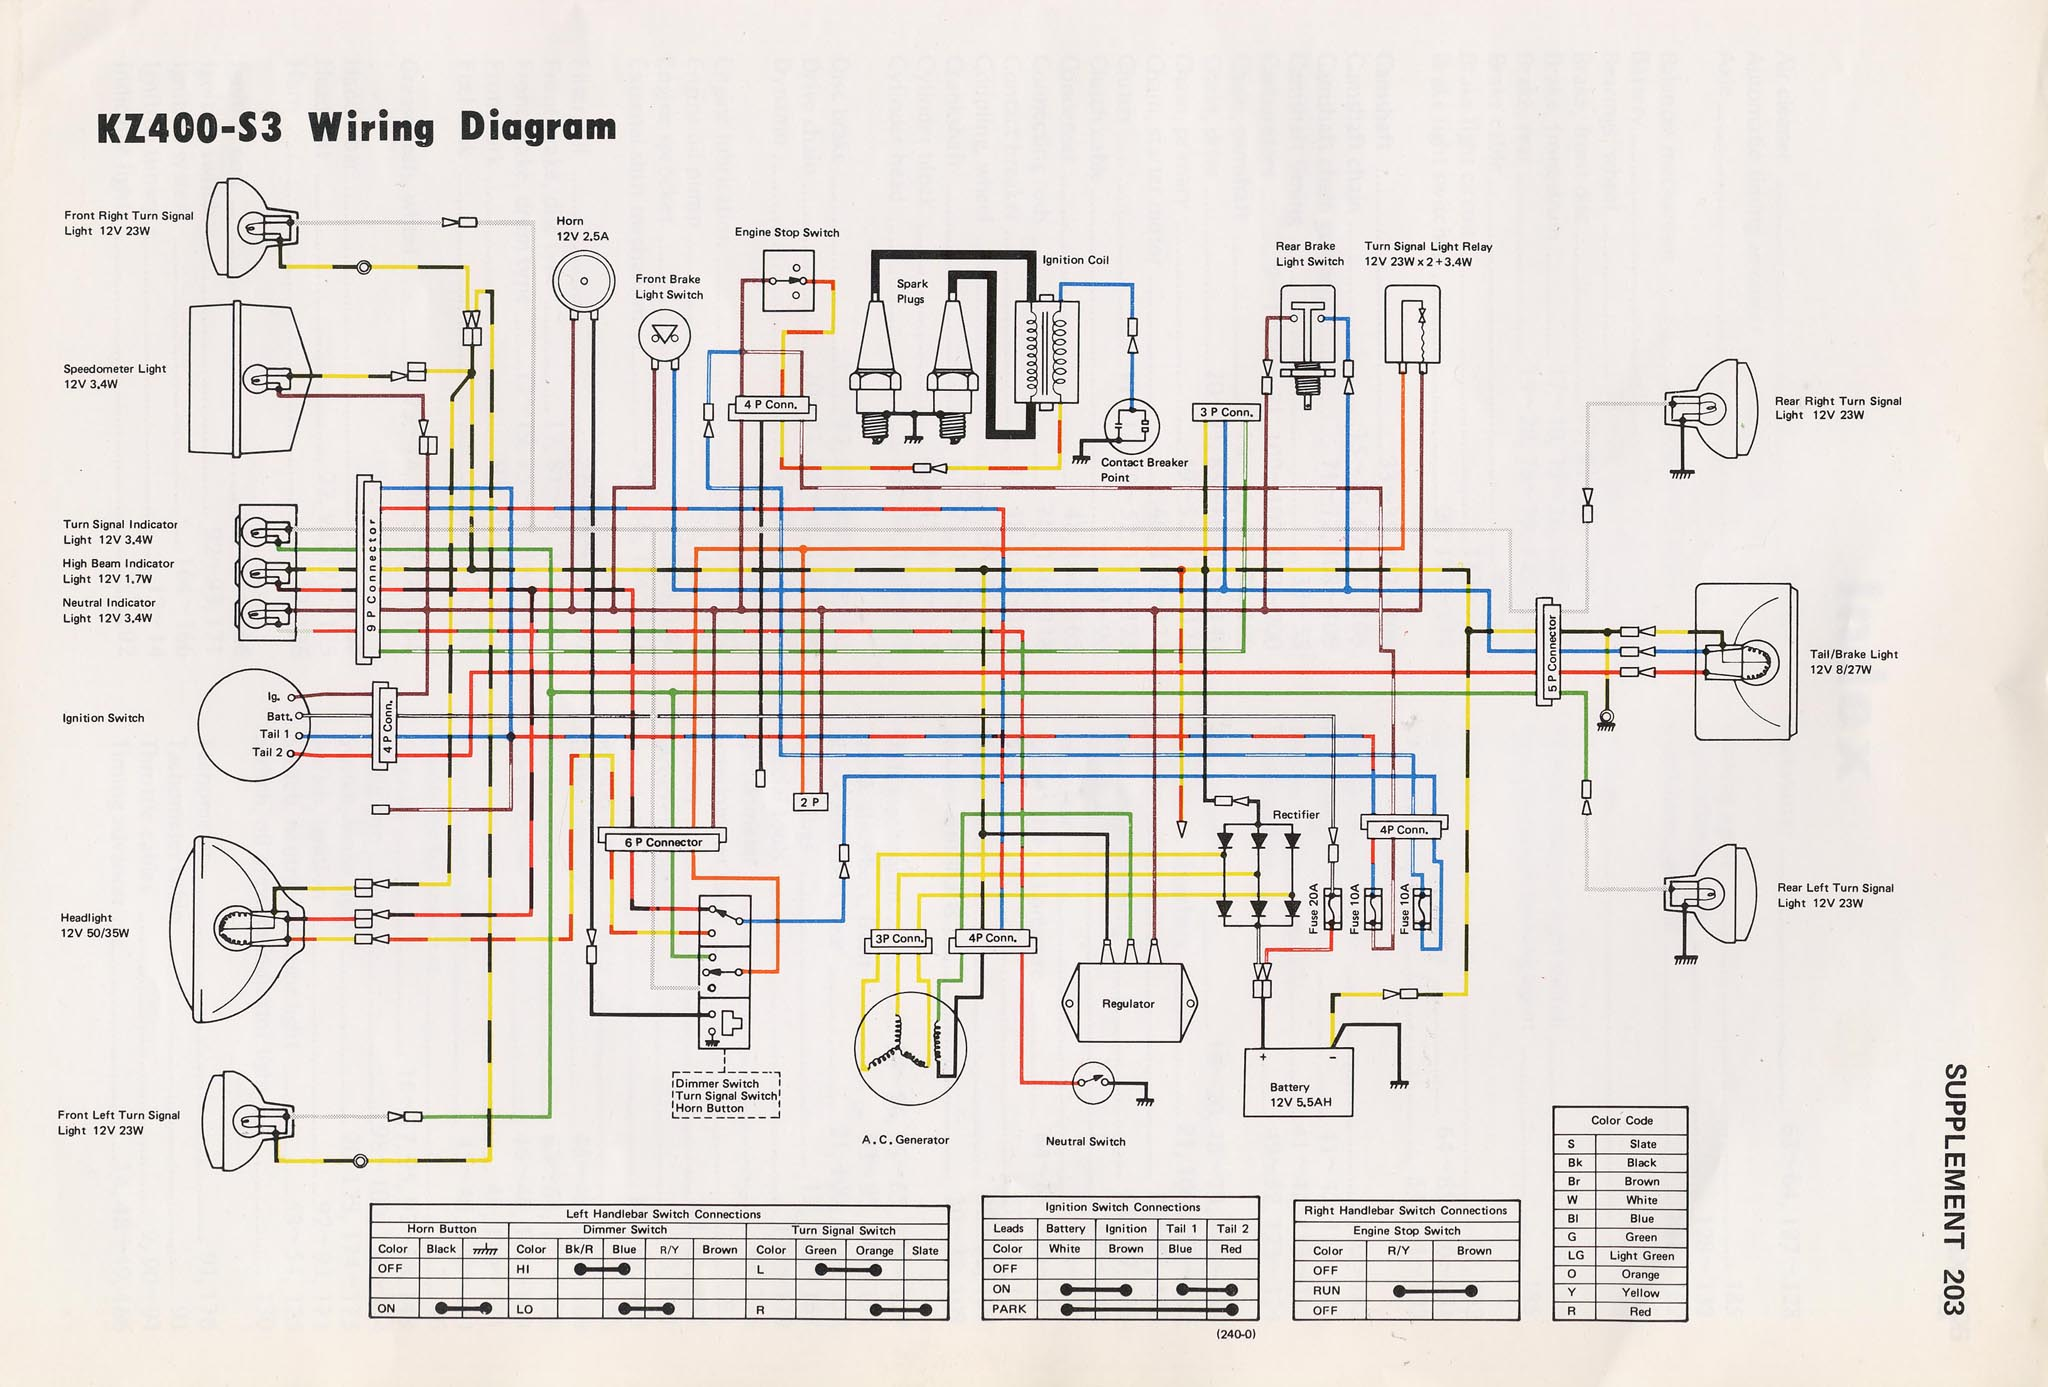 WRG-9159] Z400 Wiring Diagram